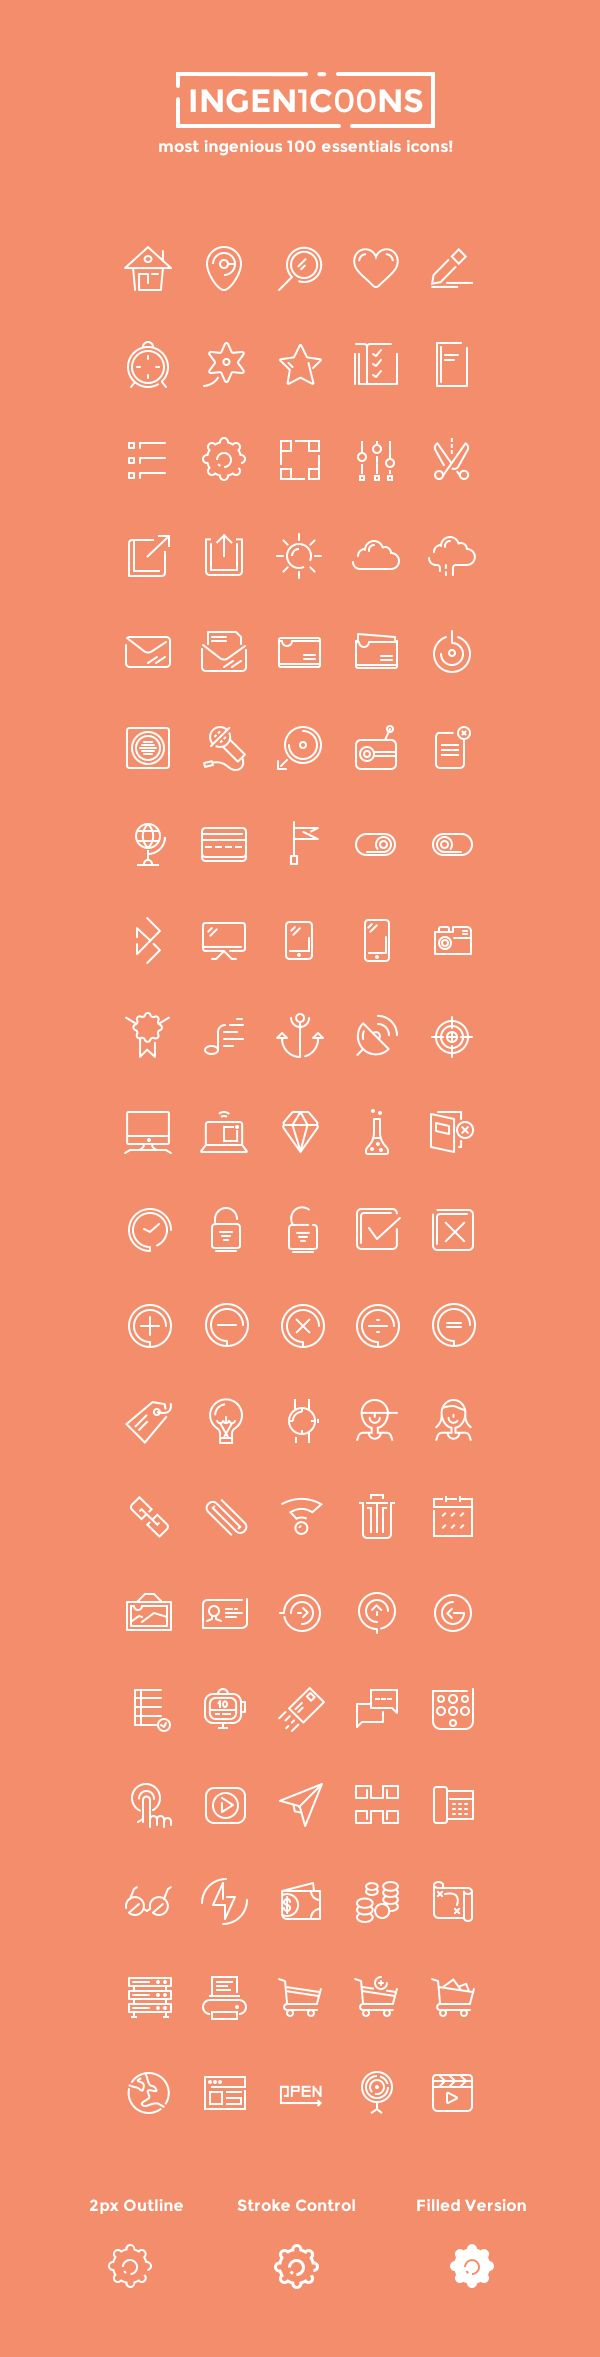 I'm glad to share with you this fantastic collection of 100 essential icons designed in an ingenious manner...